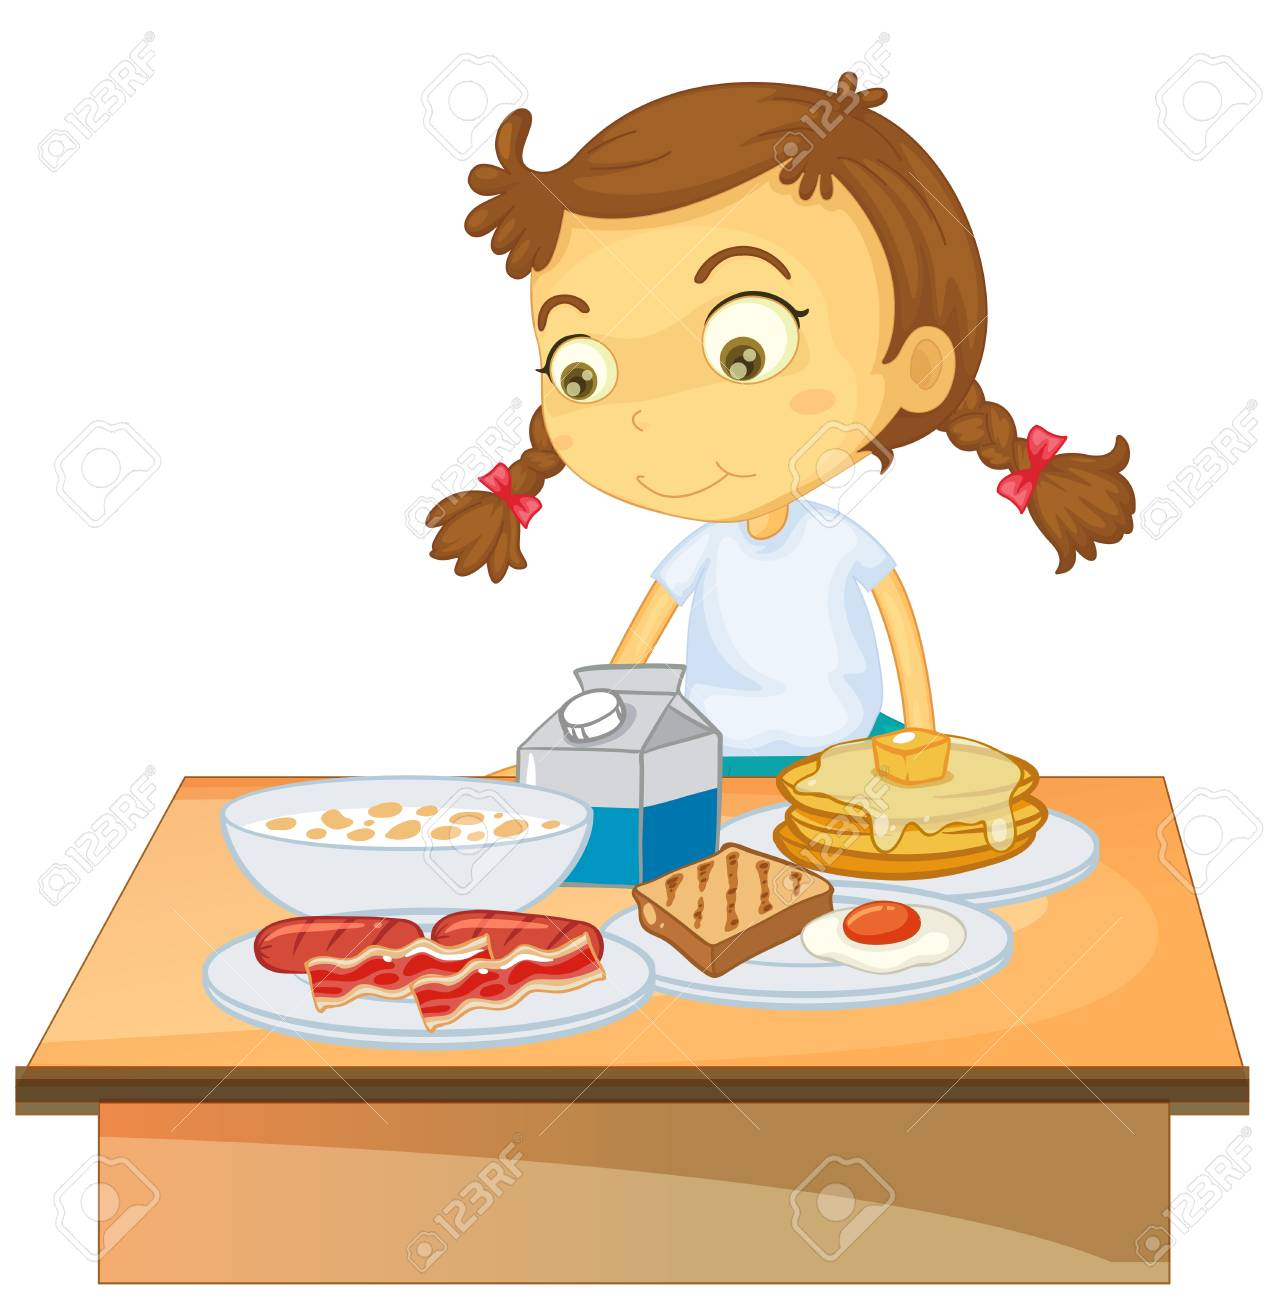 hight resolution of a girl eating breakfast on white background illustration stock vector 100959628